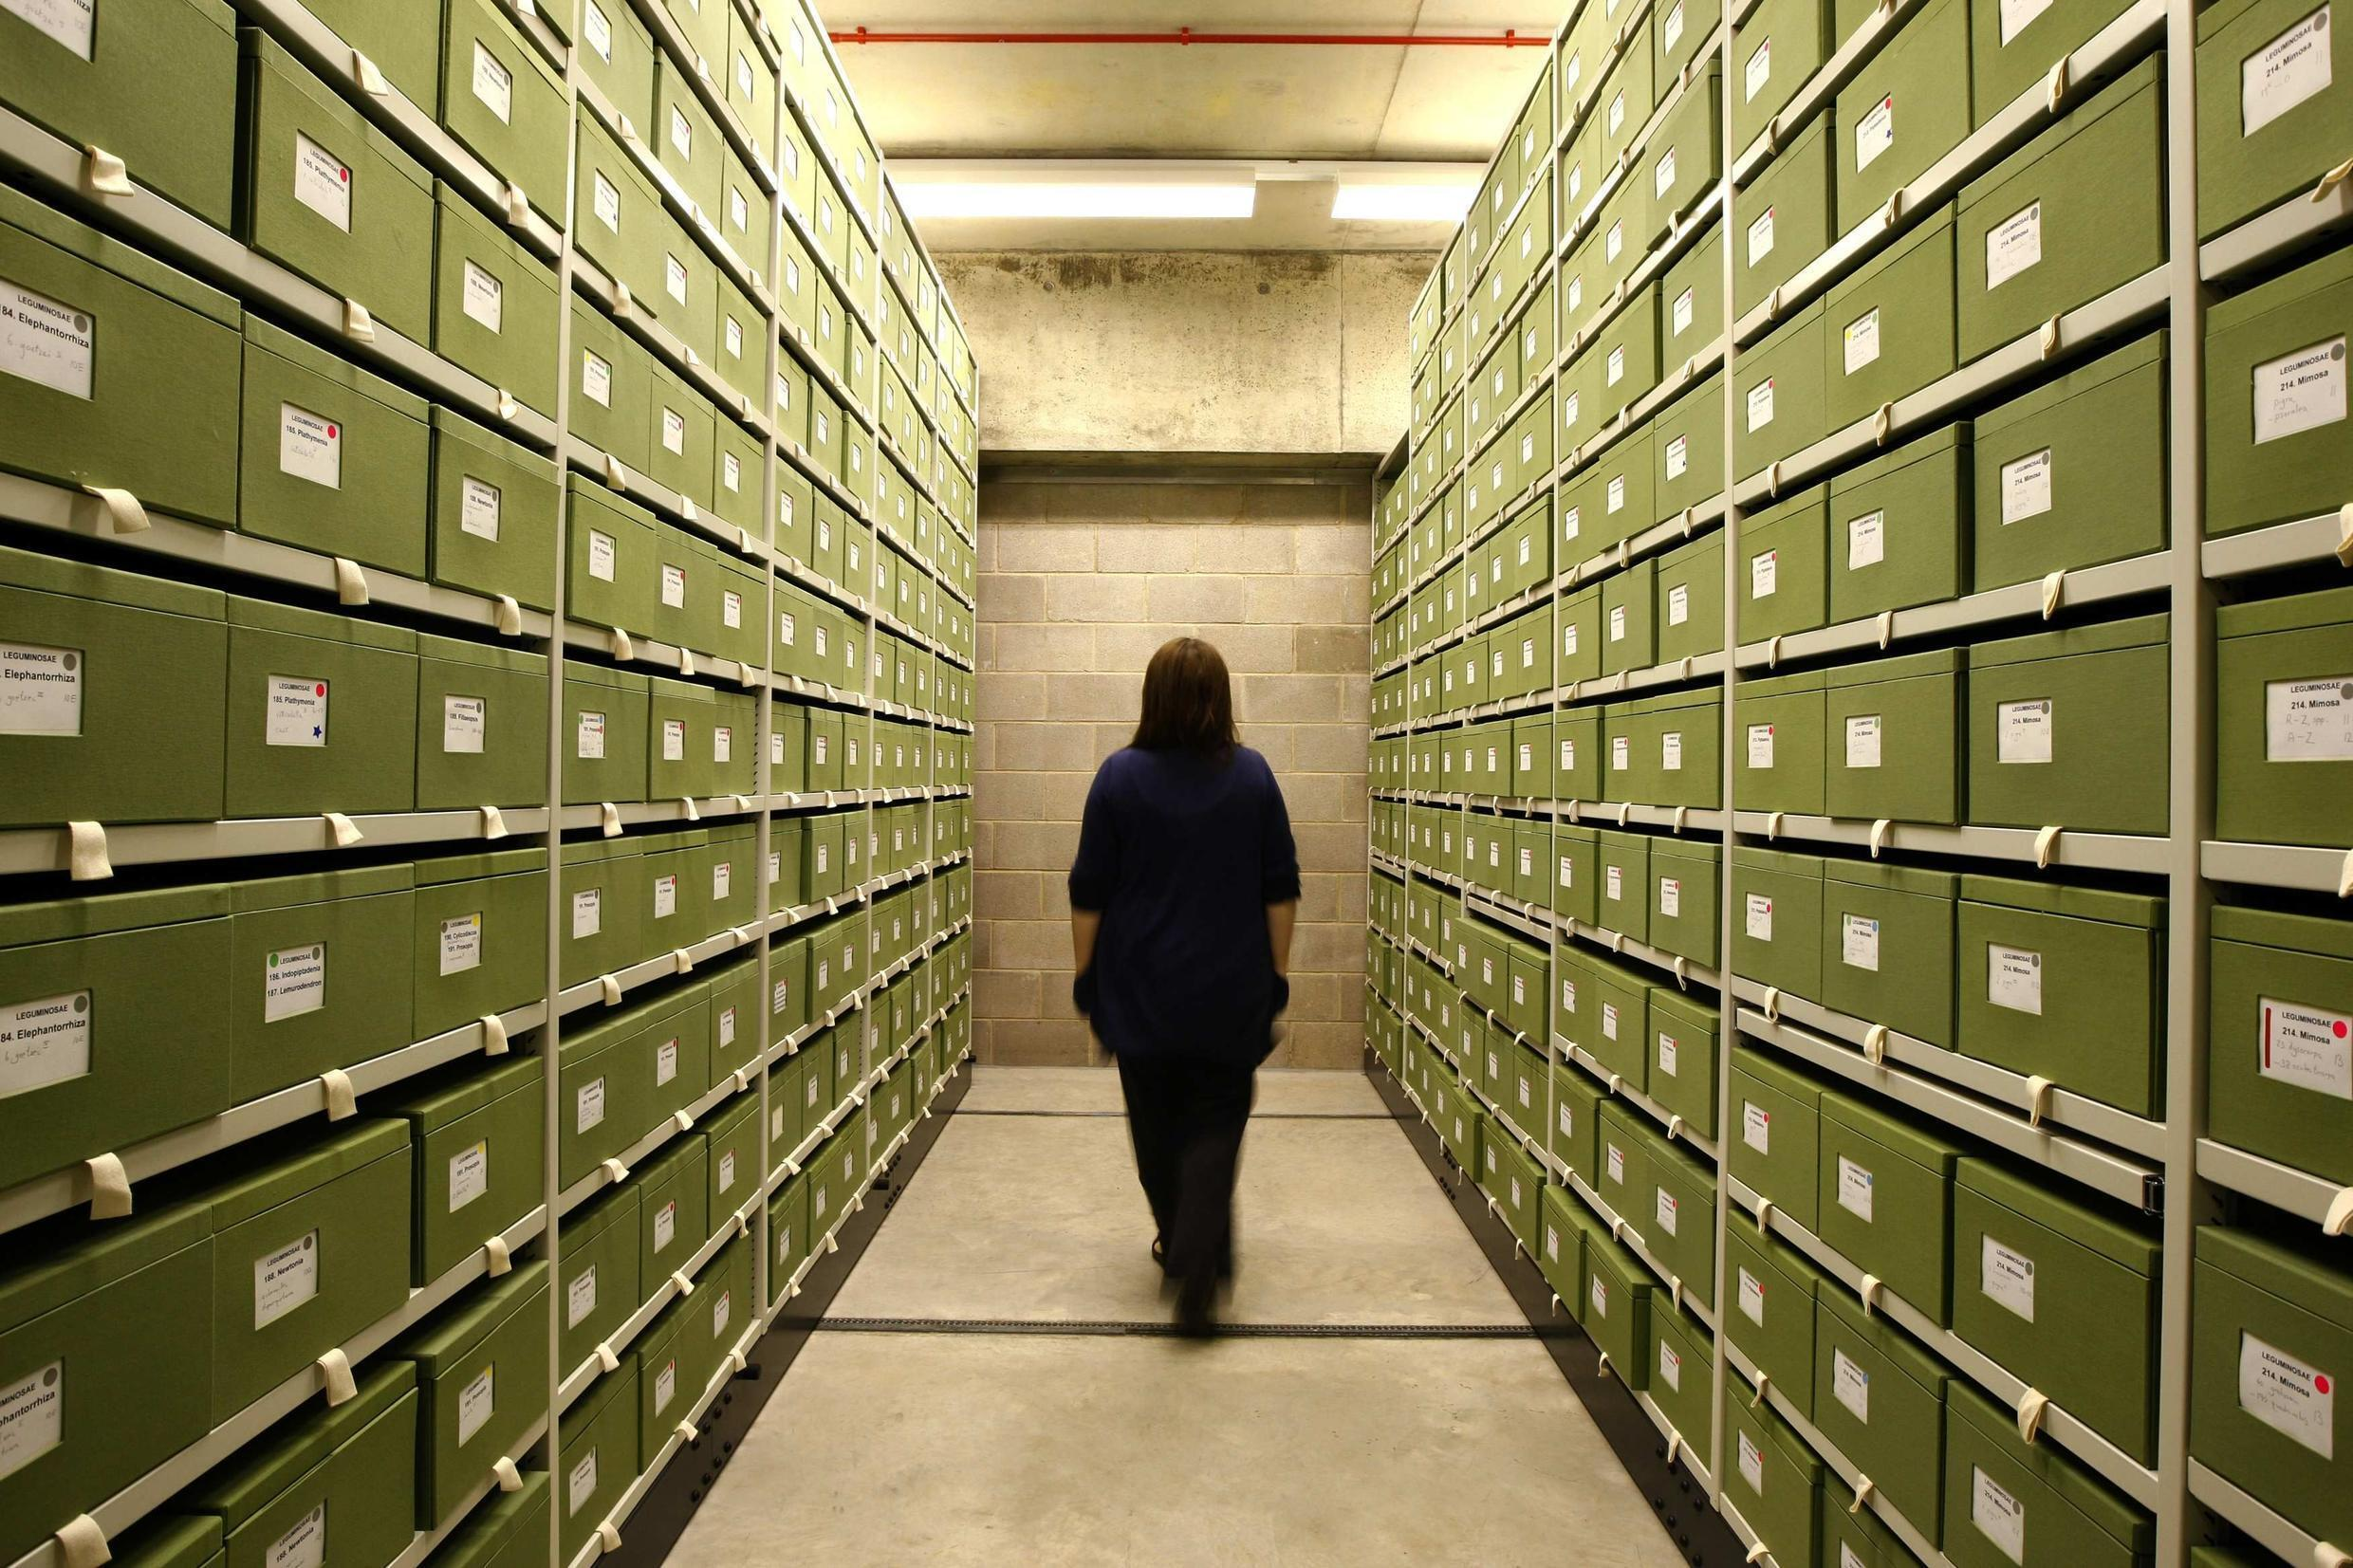 The boxes of specimens in the new wing of the herbarium in Kew Gardens in London